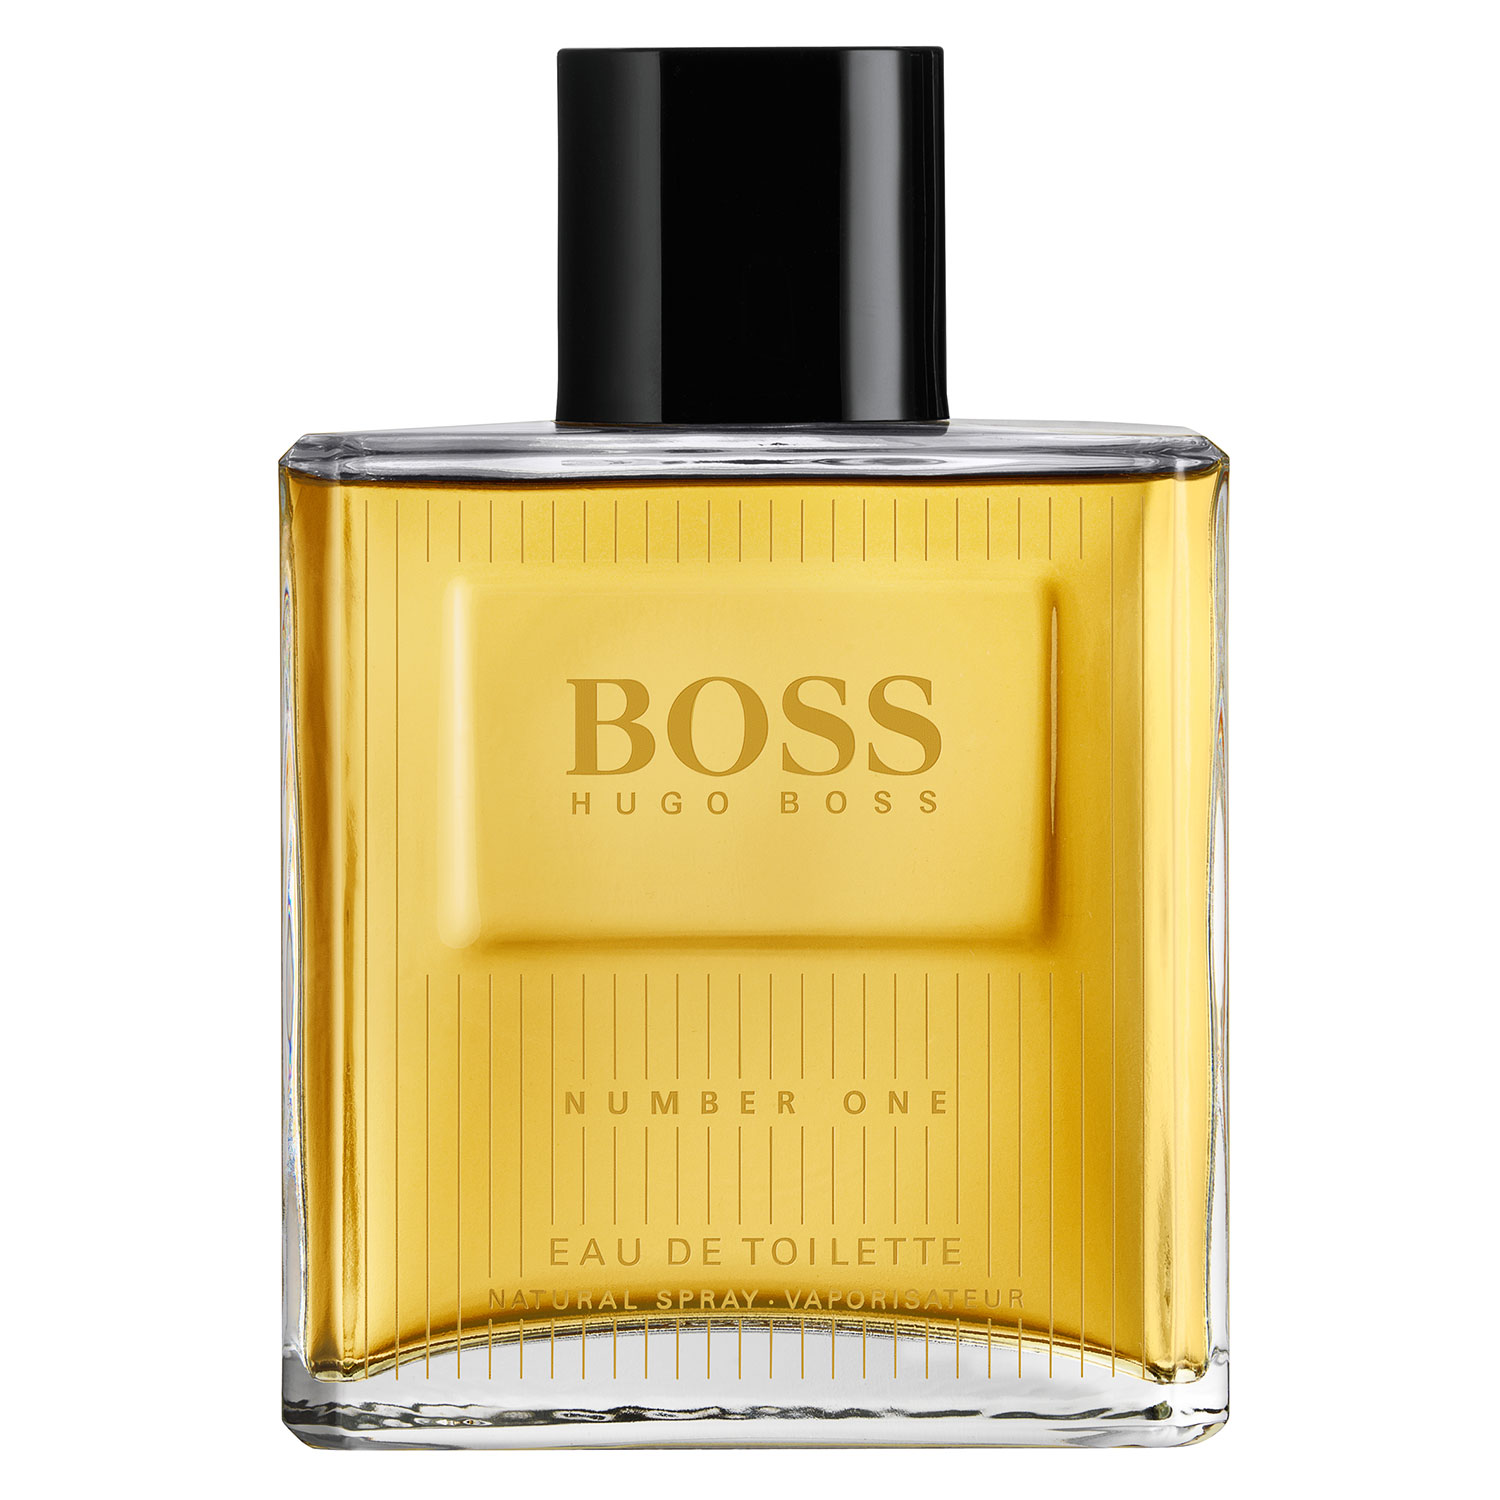 Boss - Number One Eau de Toilette